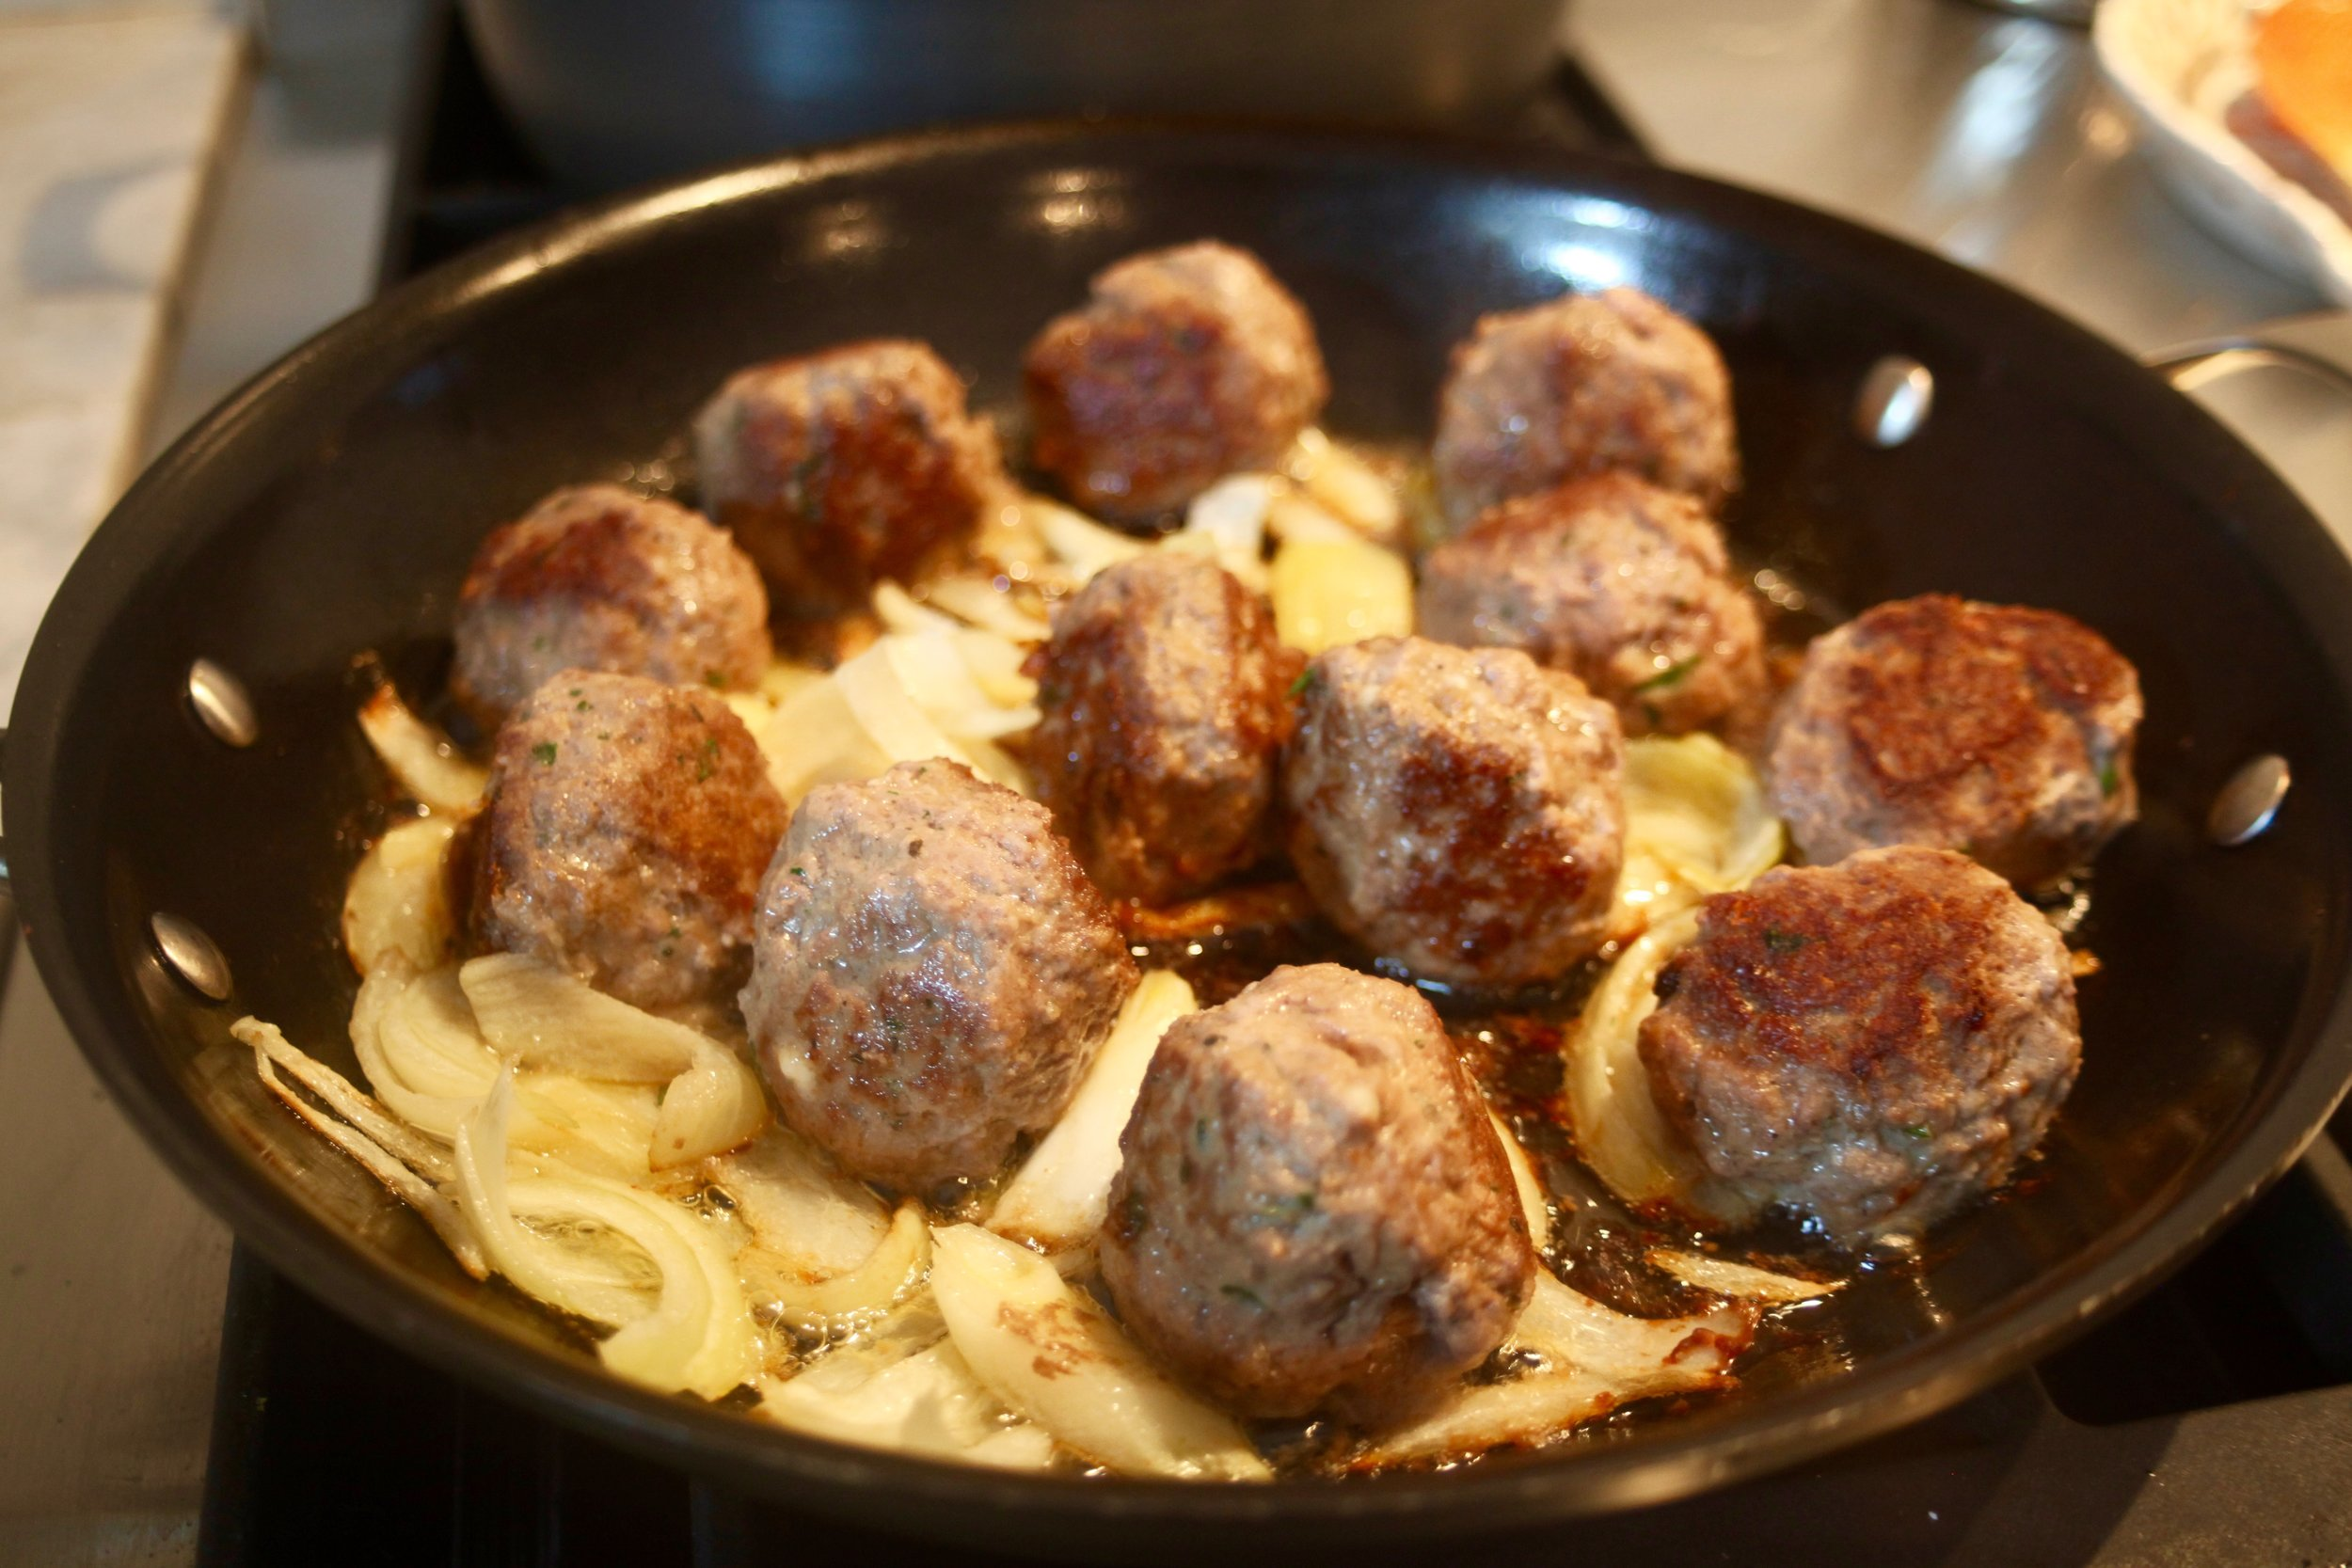 Meatballs and onion cooking up